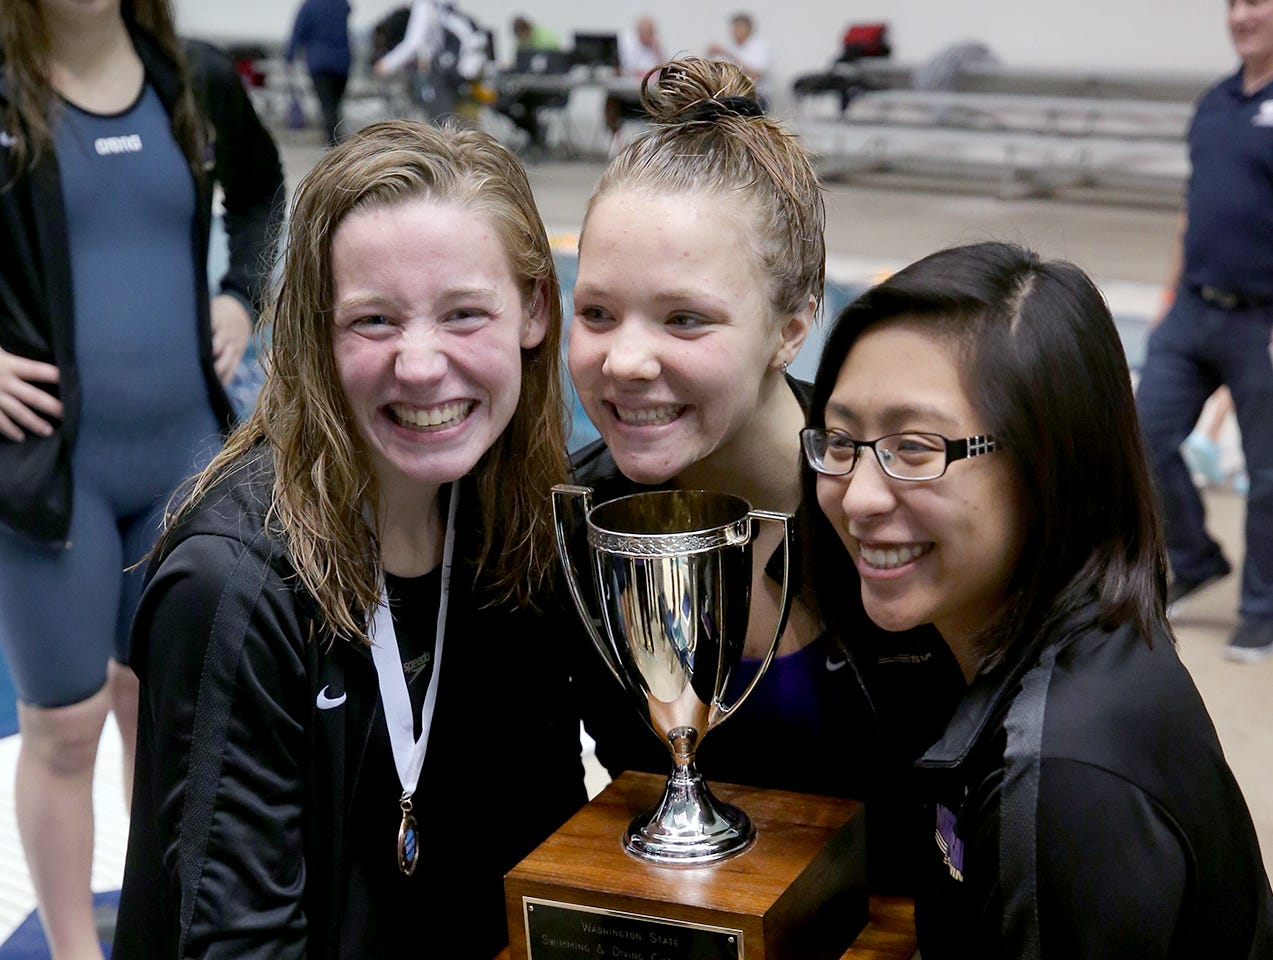 The North Kitsap Girls swim team won the team title at the 2018 2A Girls State Swim & Diving Championships on Saturday, November, 10, 2018 at the King County Aquatics Center, in Federal Way.  North Kitsap swimmers pose with the swimming title trophy.